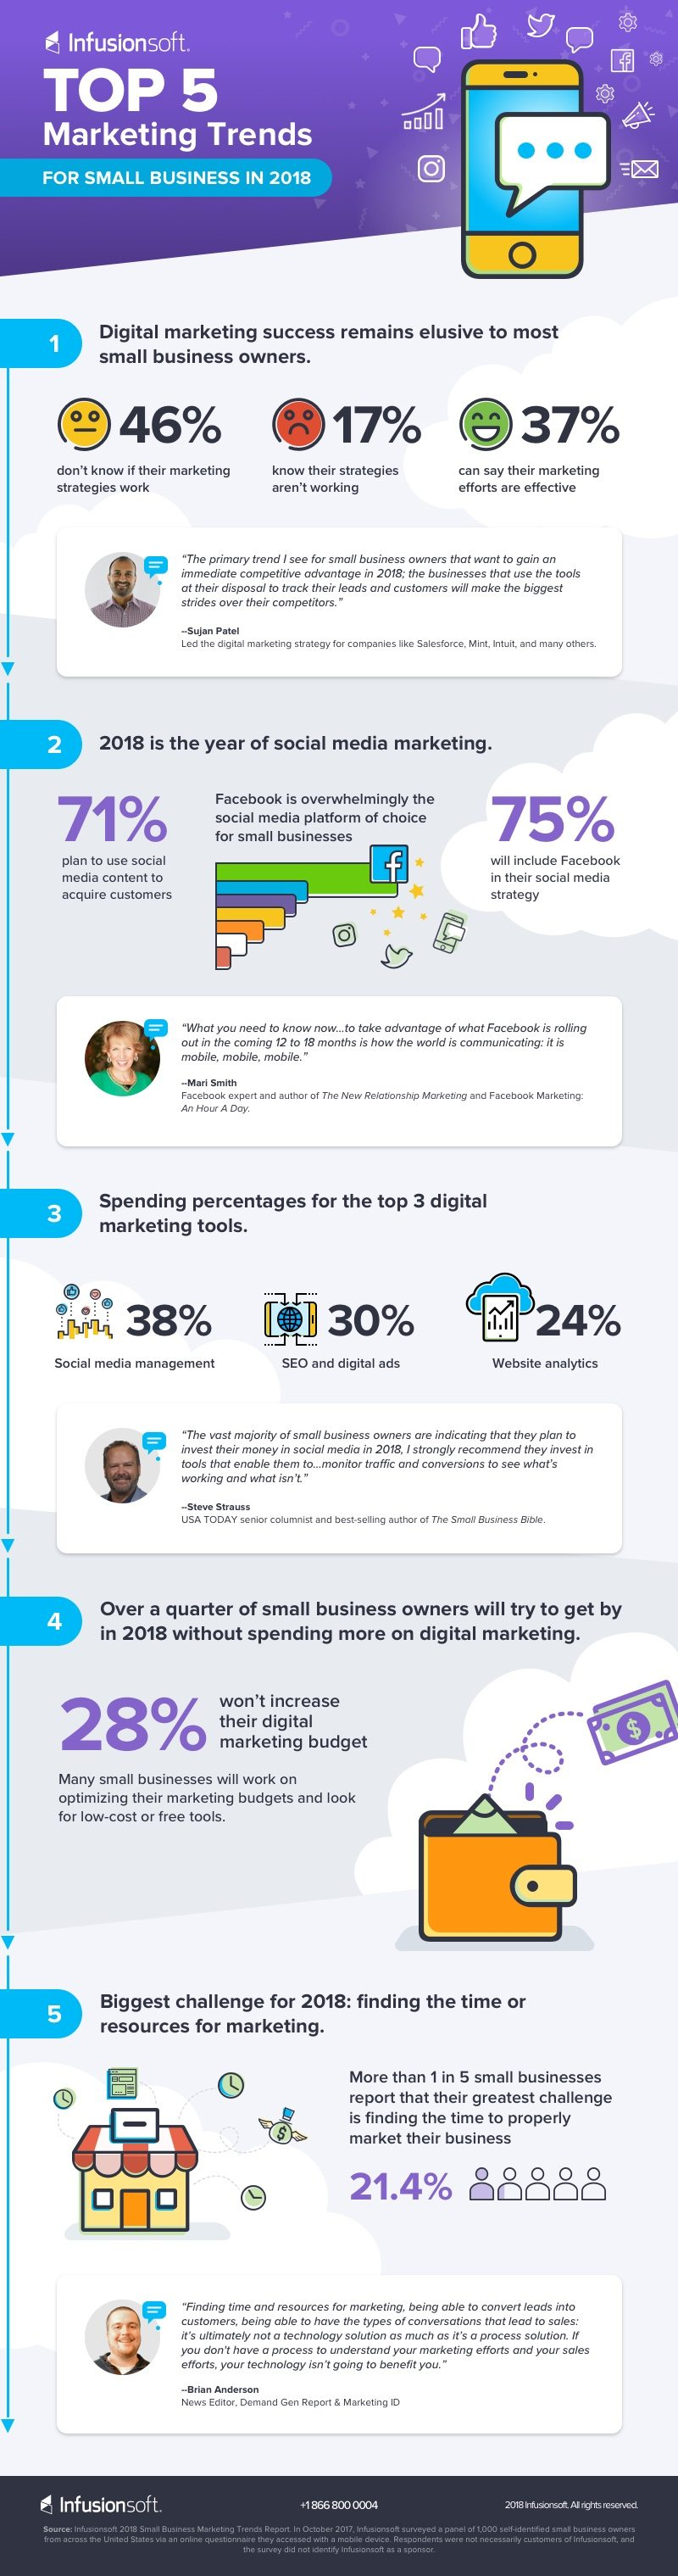 The Top 5 Marketing Trends for Small Business in 2018 [Infographic] | Social Media Today